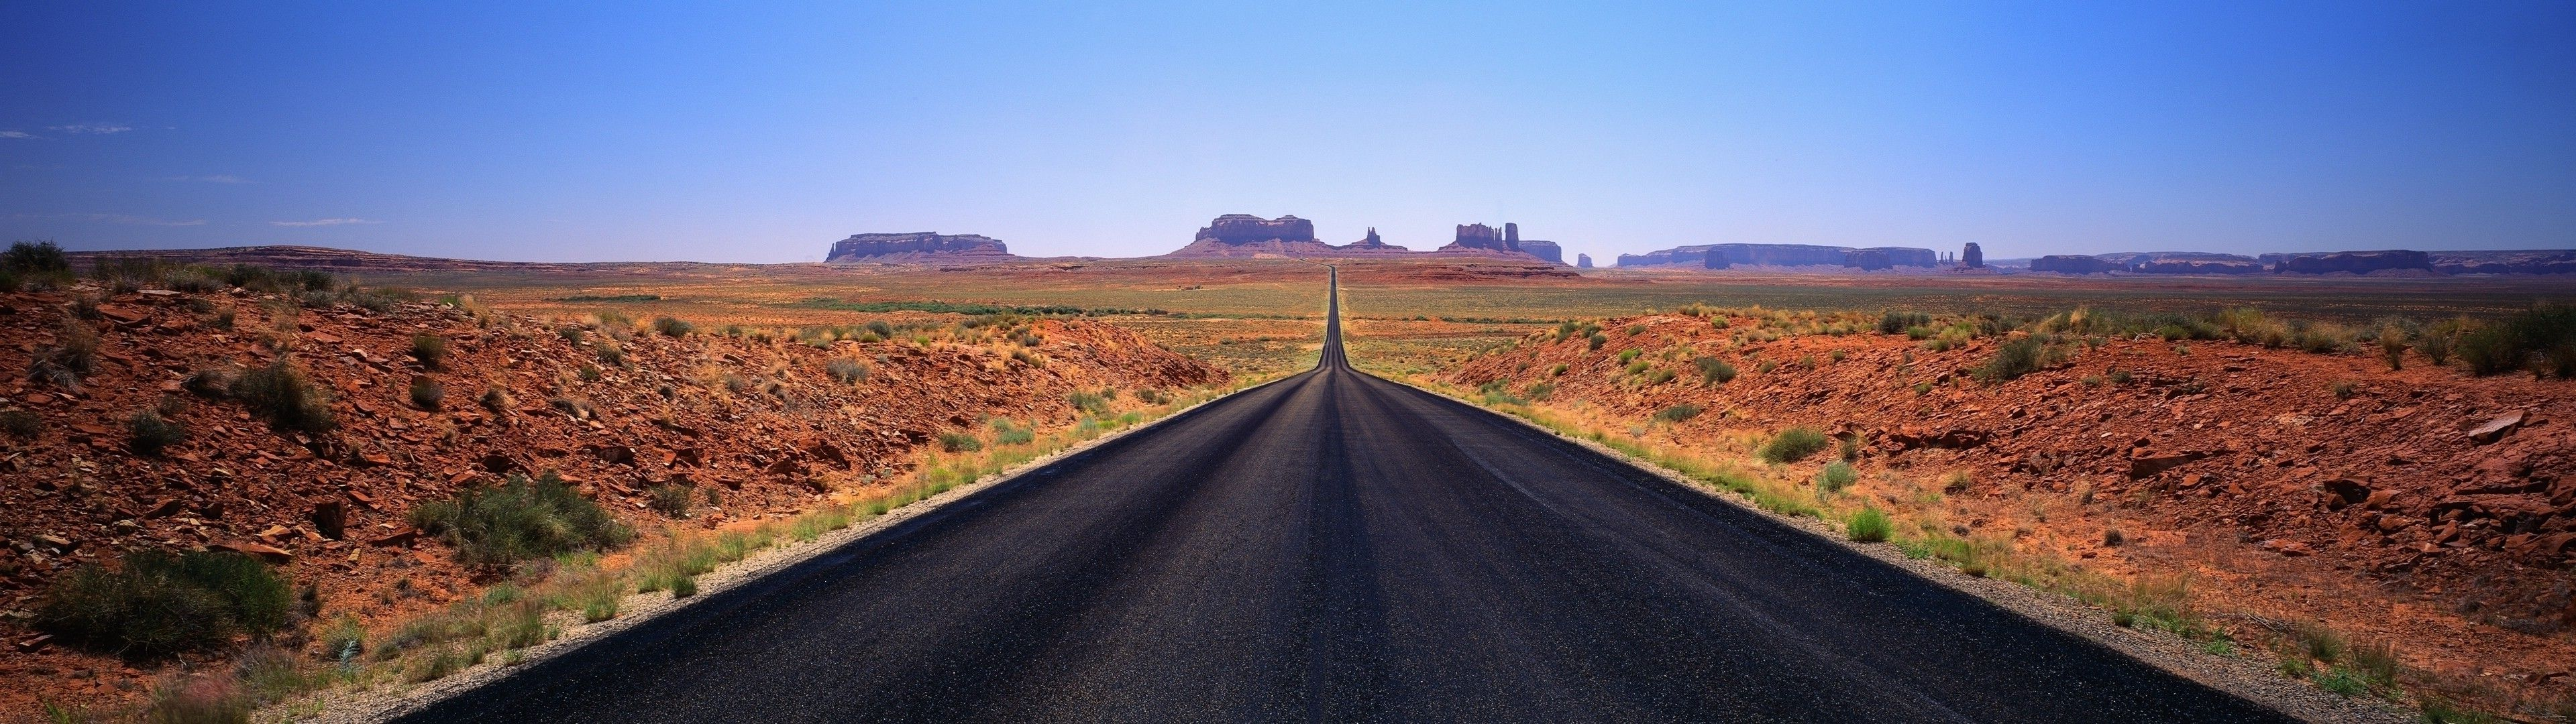 Desert Highway Wallpapers Top Free Desert Highway